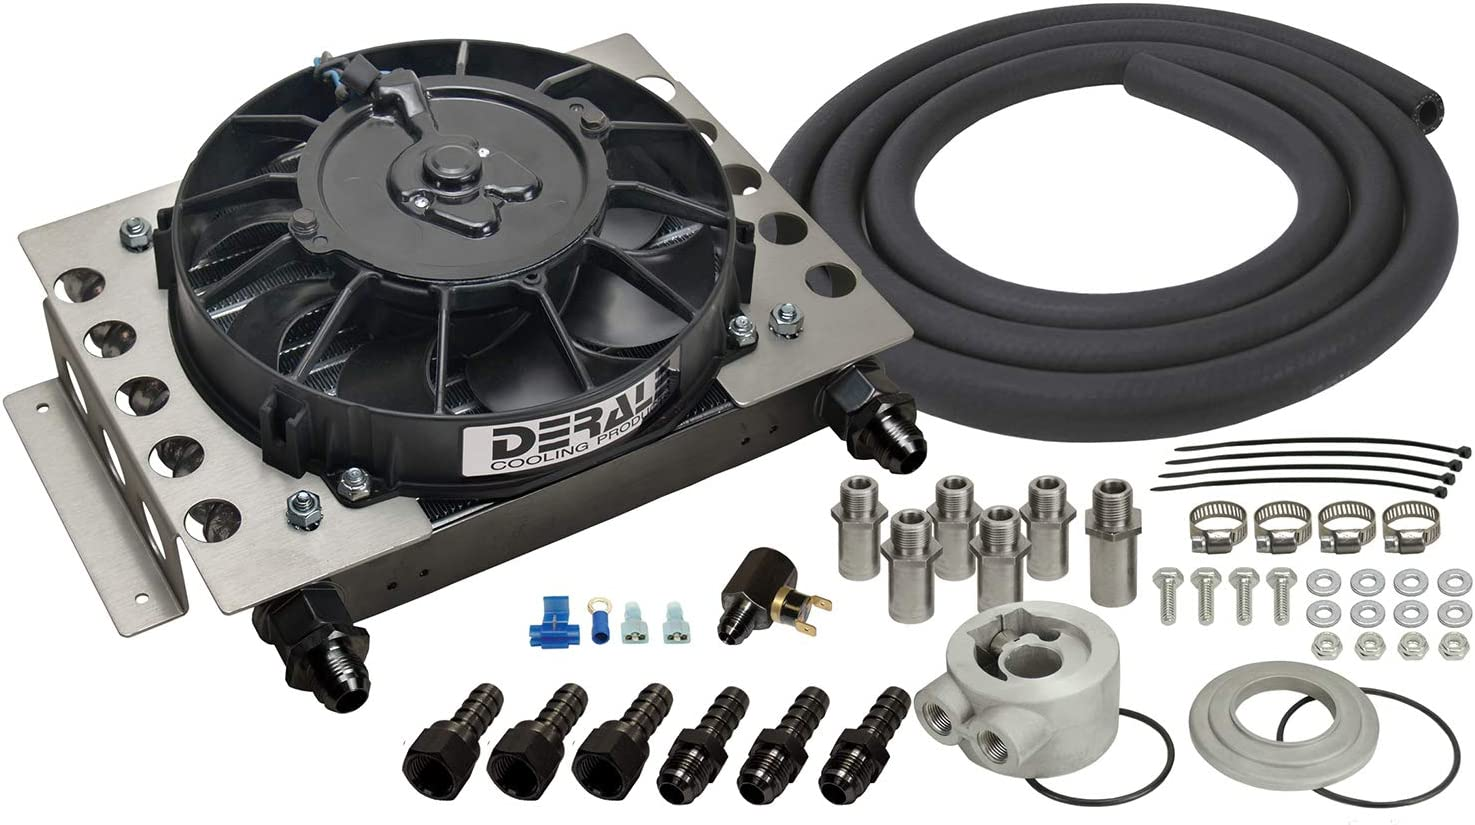 Derale 15450 Atomic-Cool Year-end gift Black Cooler Remote 4 years warranty